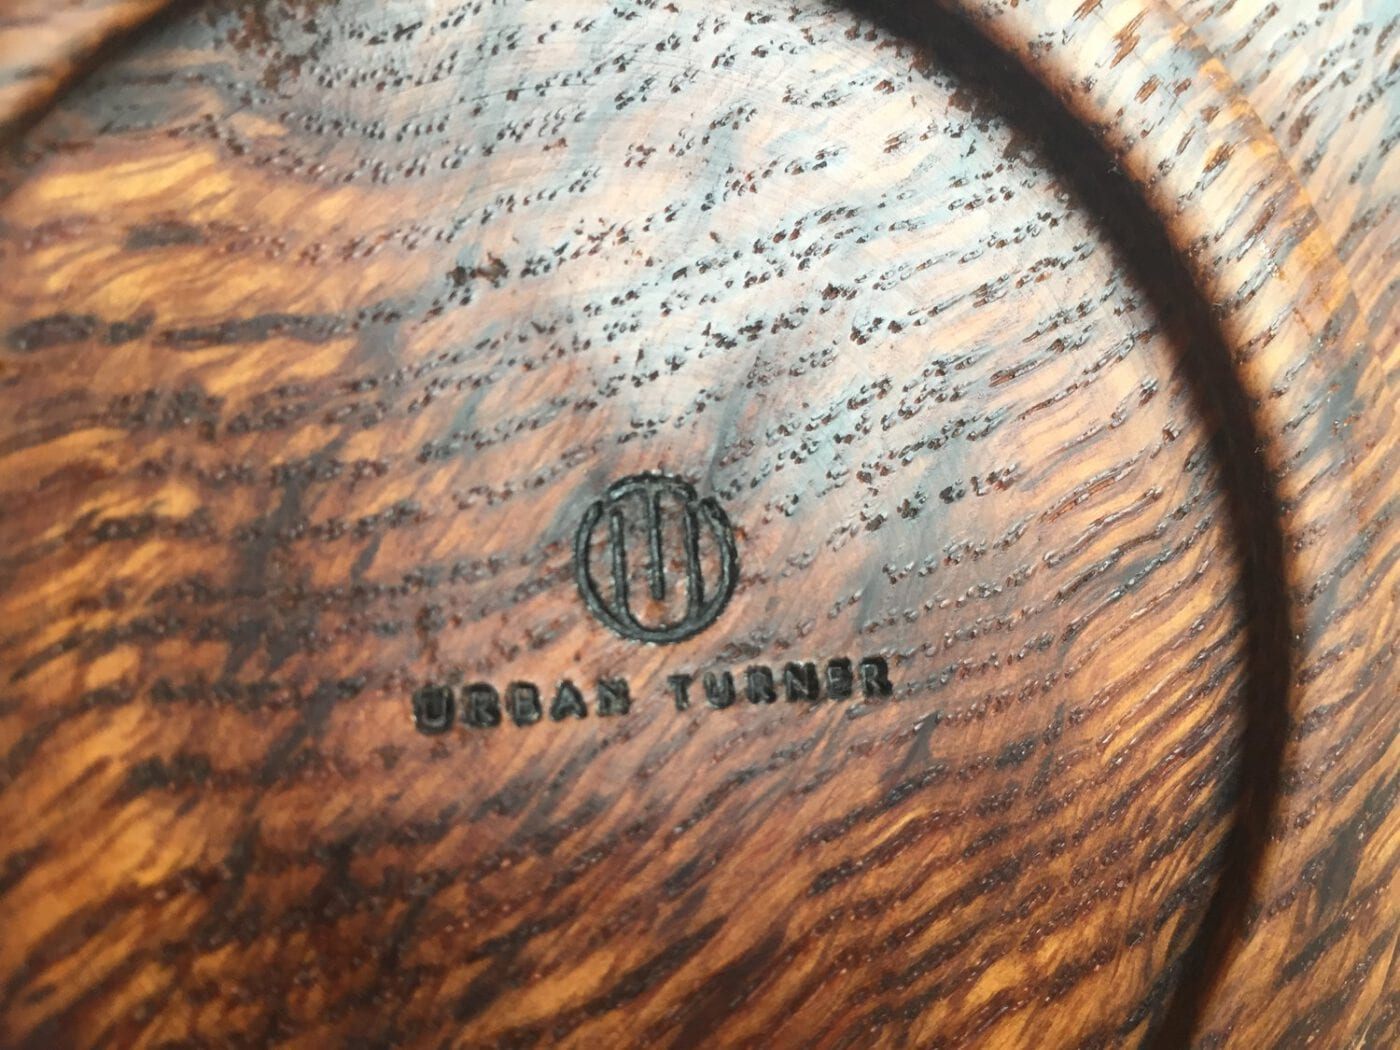 The Urban Turner: Finding passion in woodturning